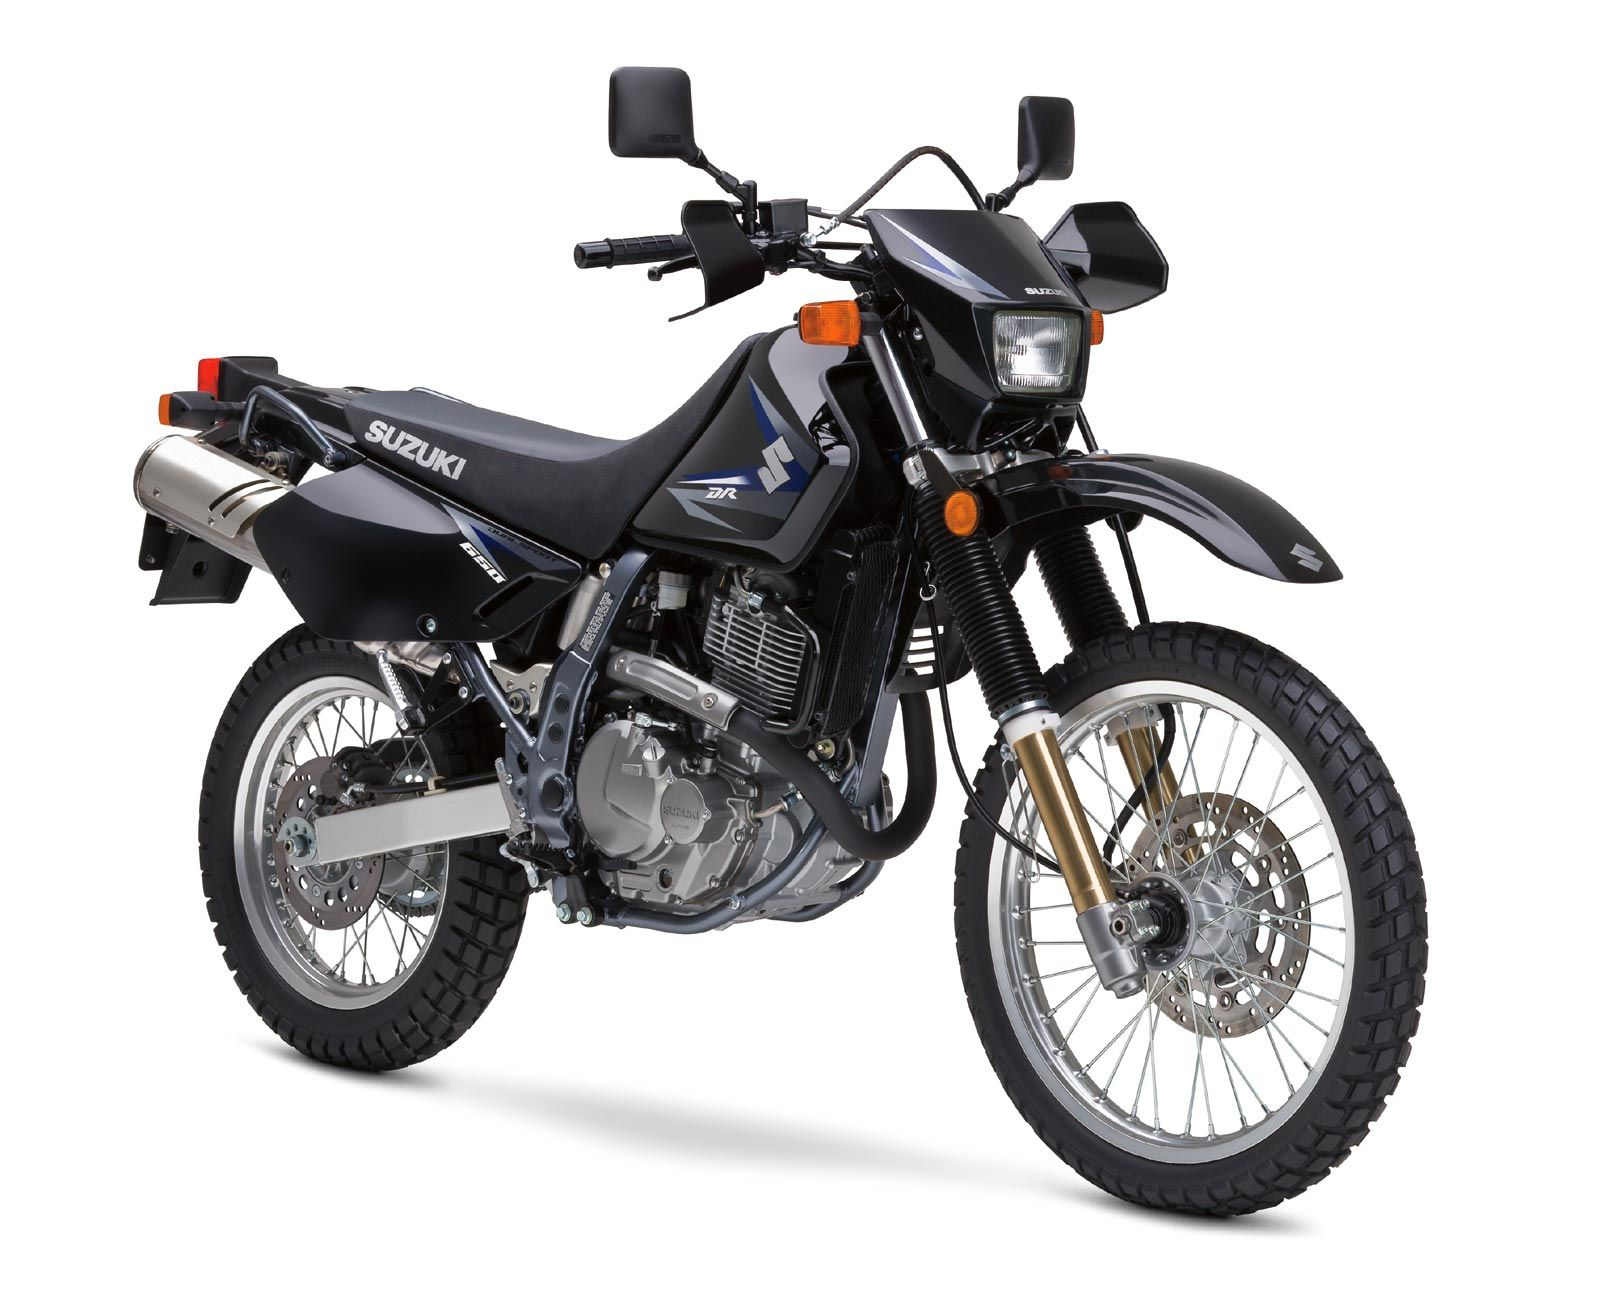 Miraculous Suzuki Dr650Se Wiring Diagram Electronic Schematic Suzuki Dr200 Wiring Digital Resources Millslowmaporg